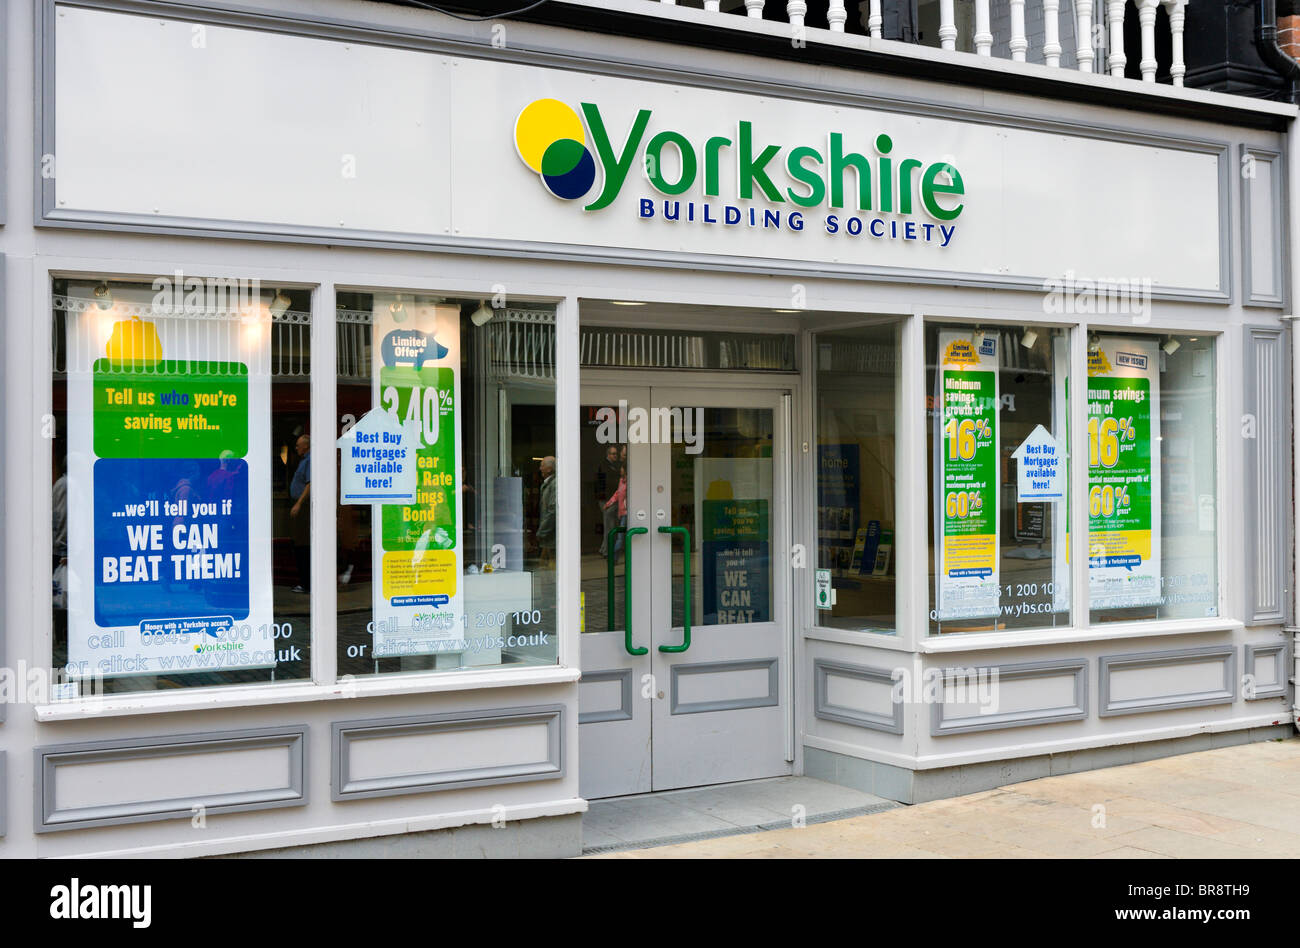 Yorkshire Building Society branch in Chester town centre, Cheshire, England, UK - Stock Image